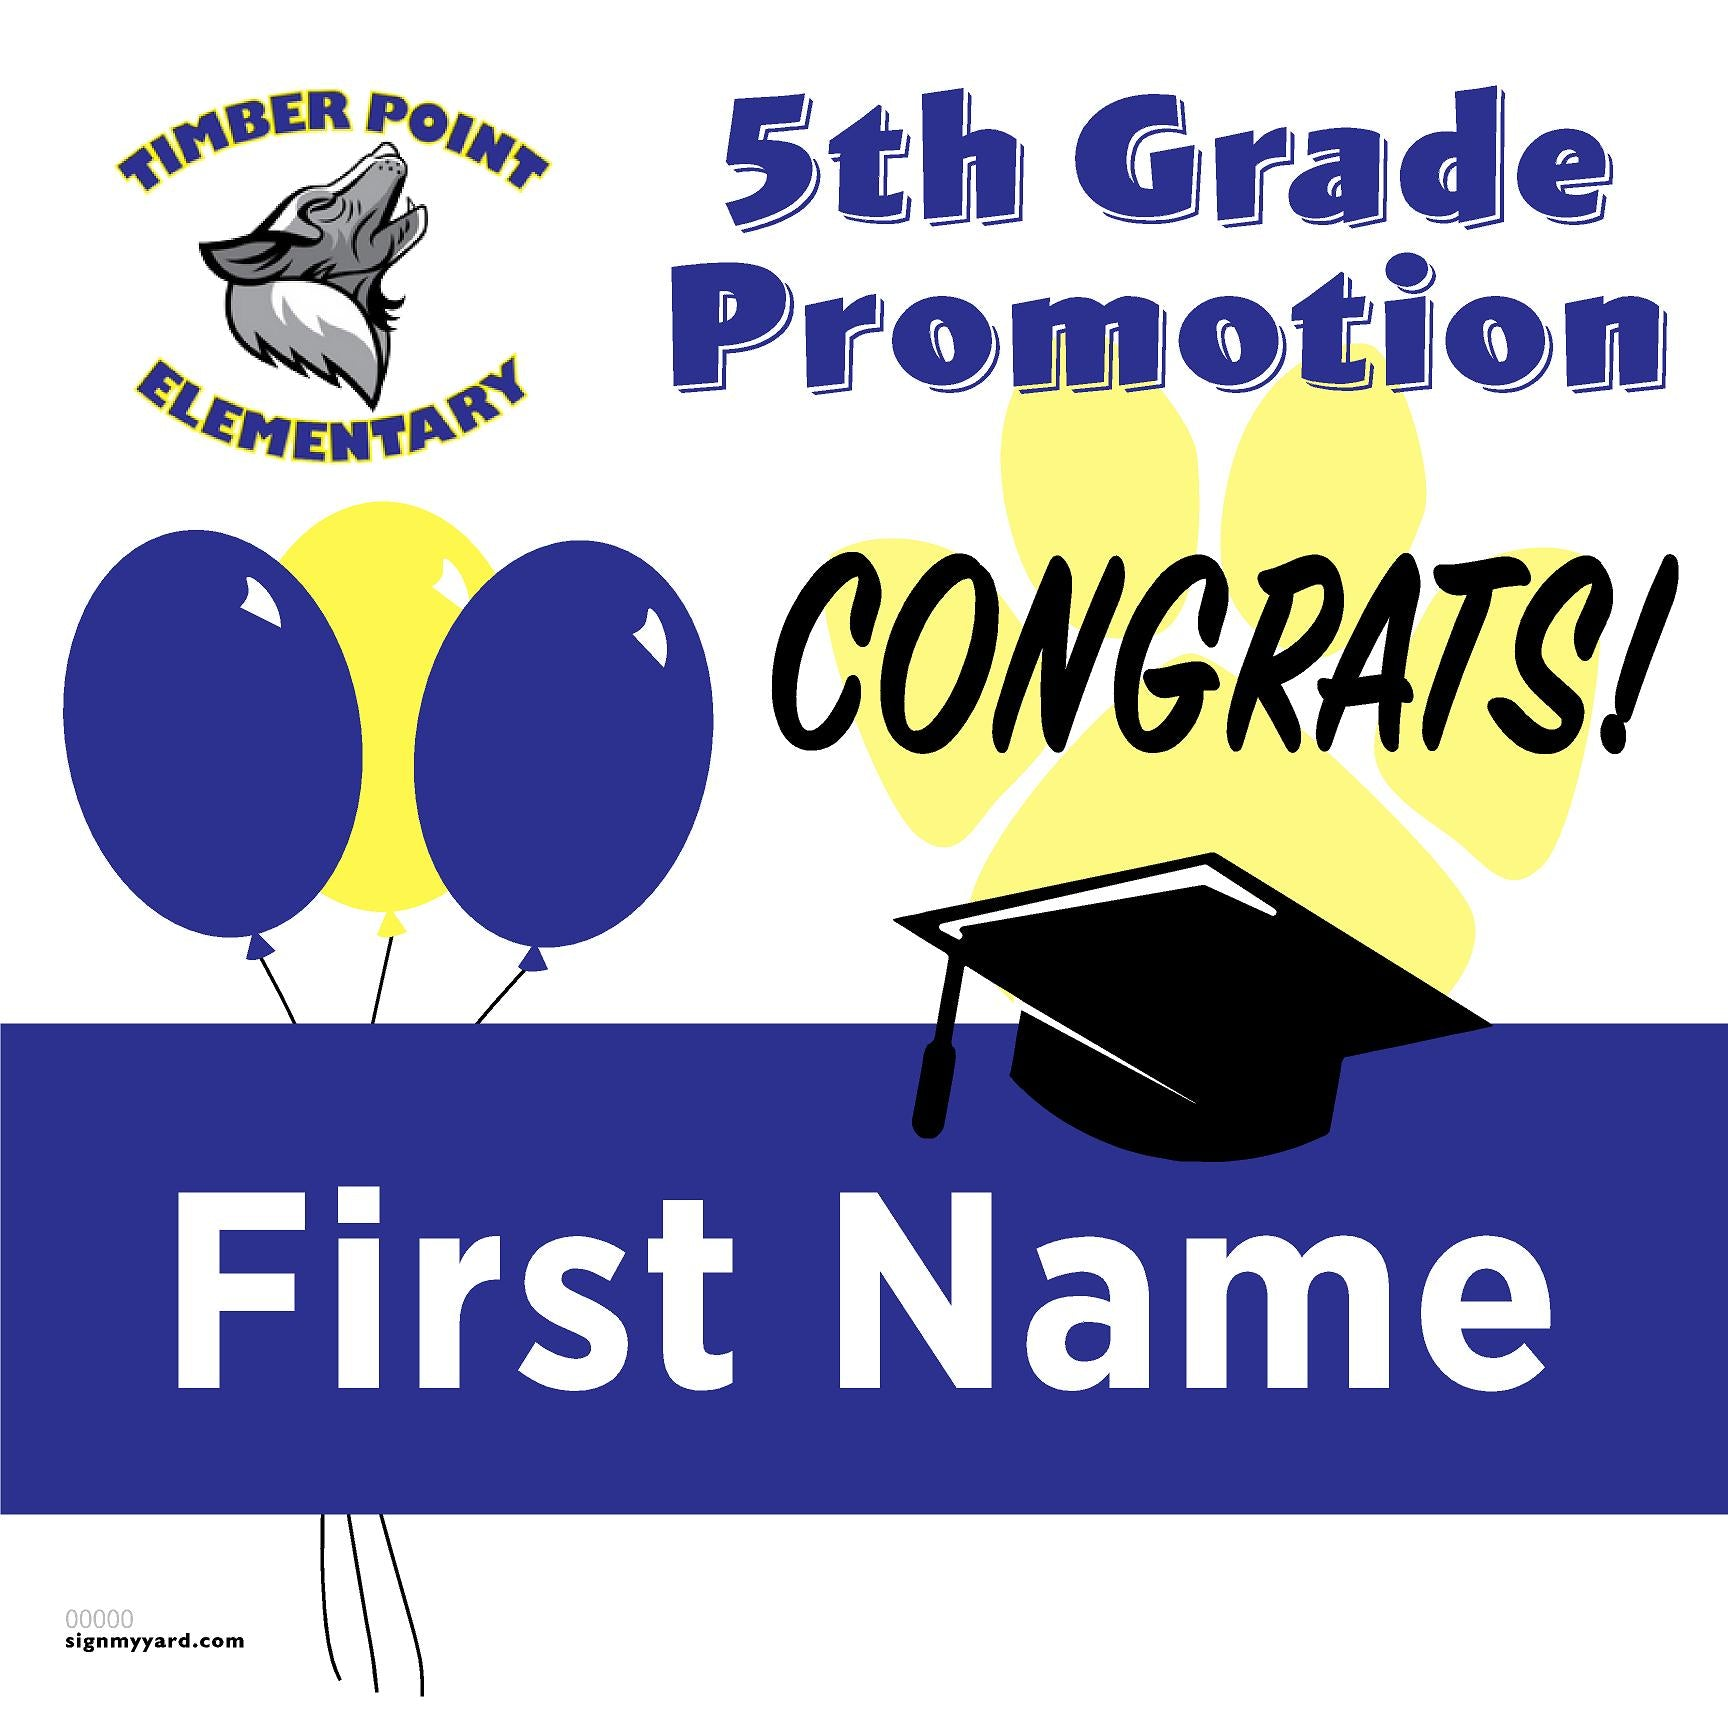 Timber Point Elementary School 5th Grade Promotion 24x24 #shineon2027 Yard Sign (Option A)